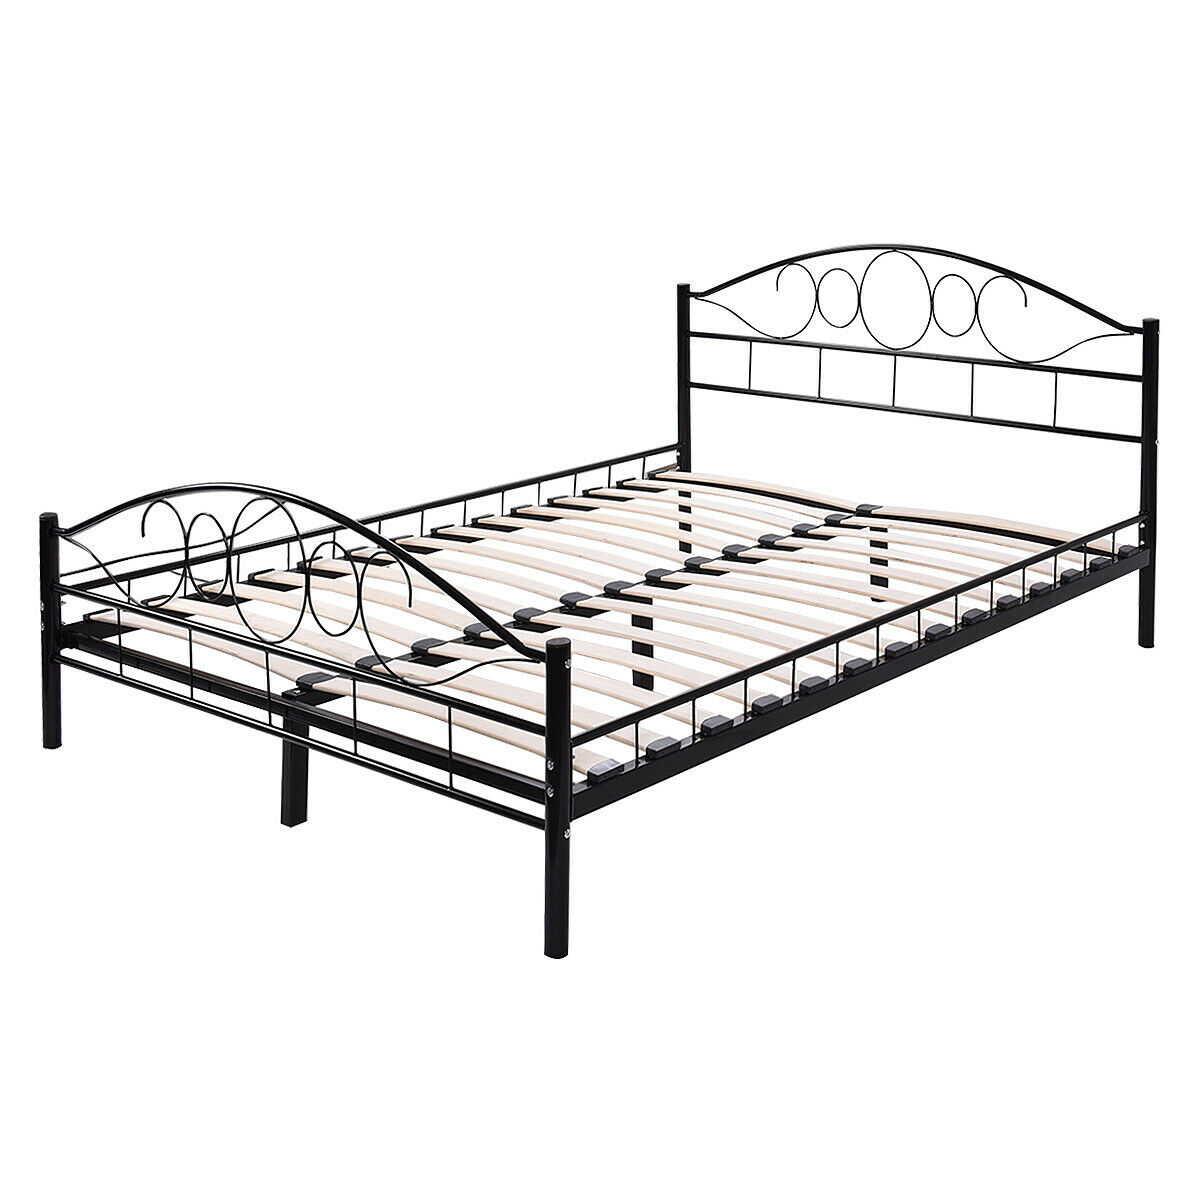 Costway Queen Size Wood Slats Steel Bed Frame Platform Headboard Footboard Black